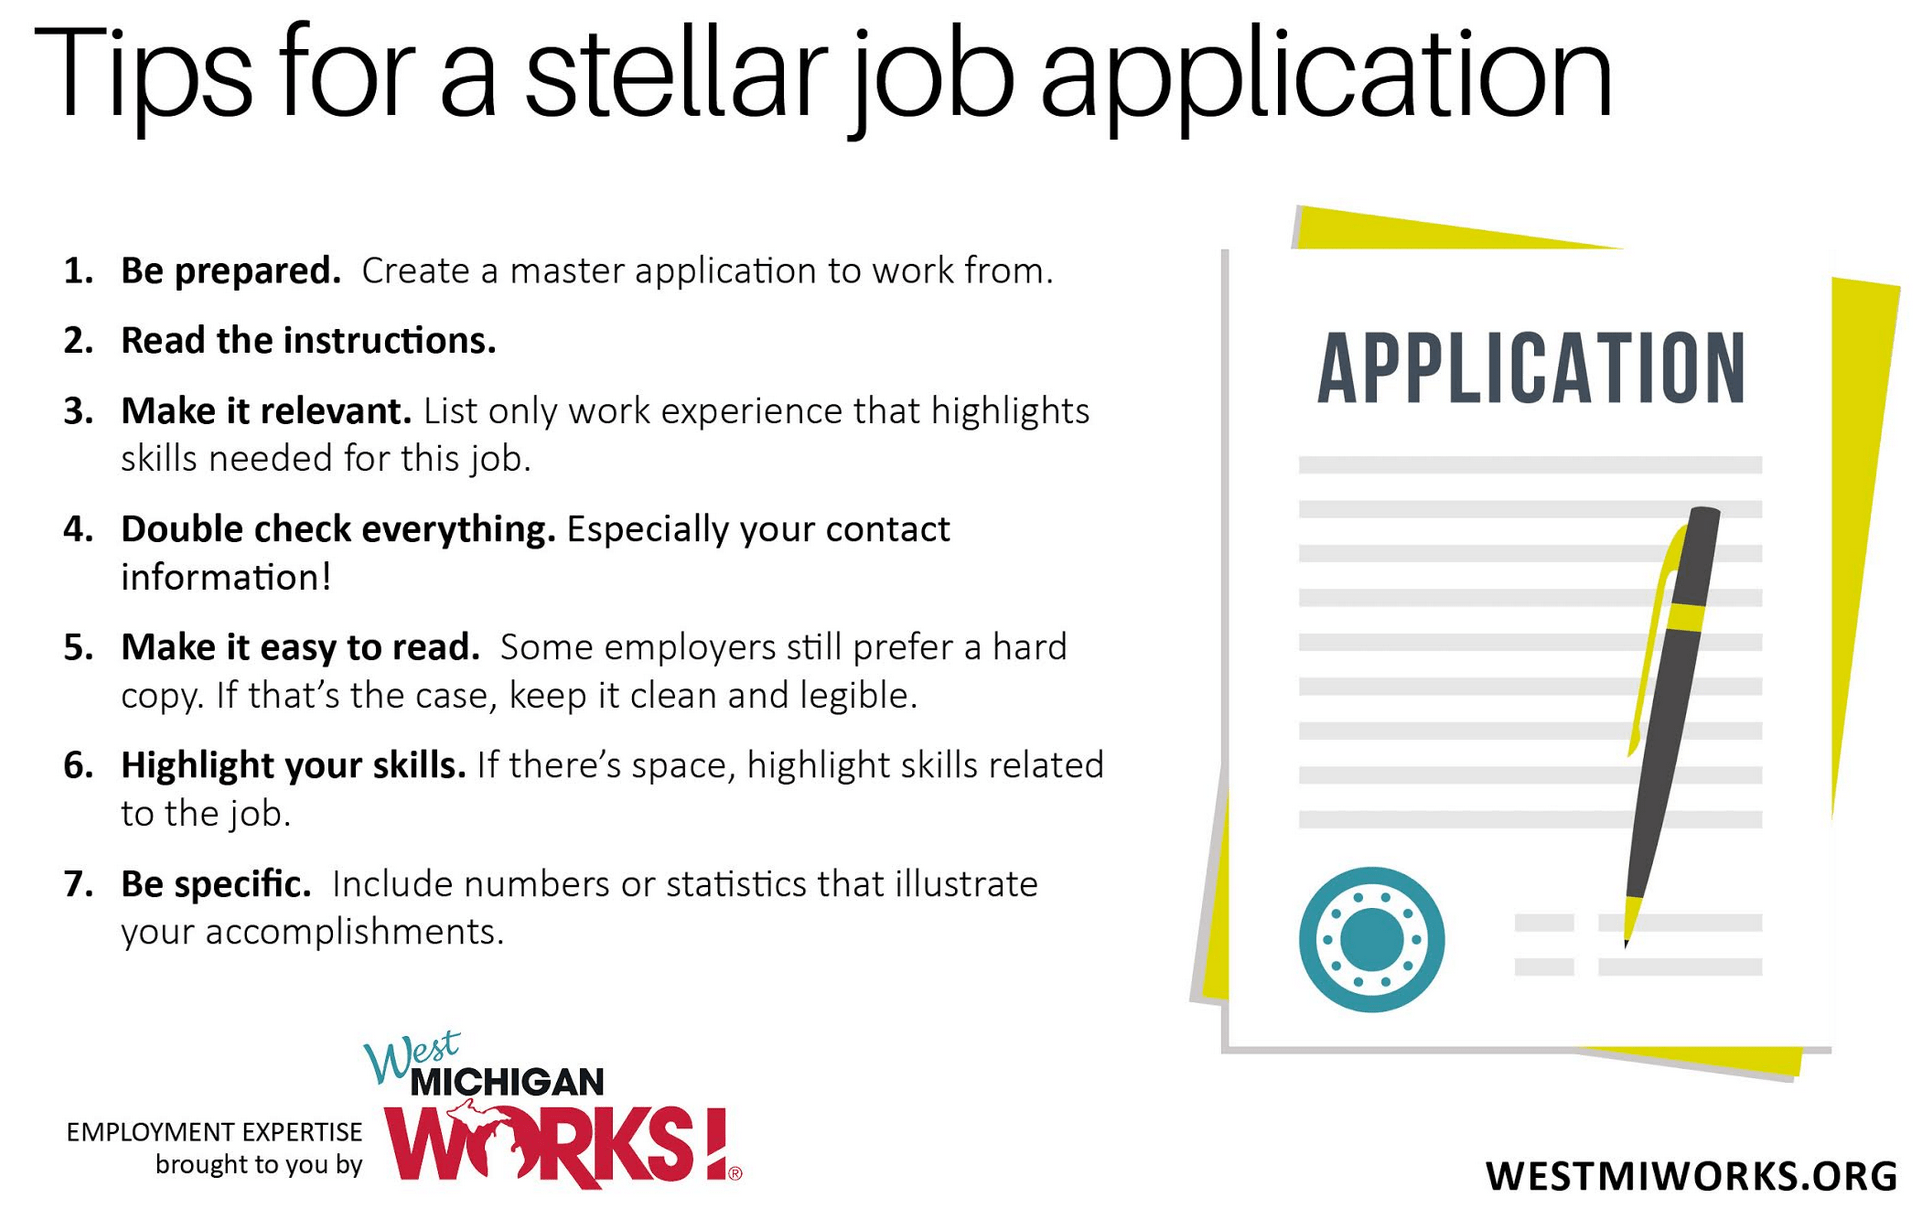 employment expertise seven tips for a stellar job application